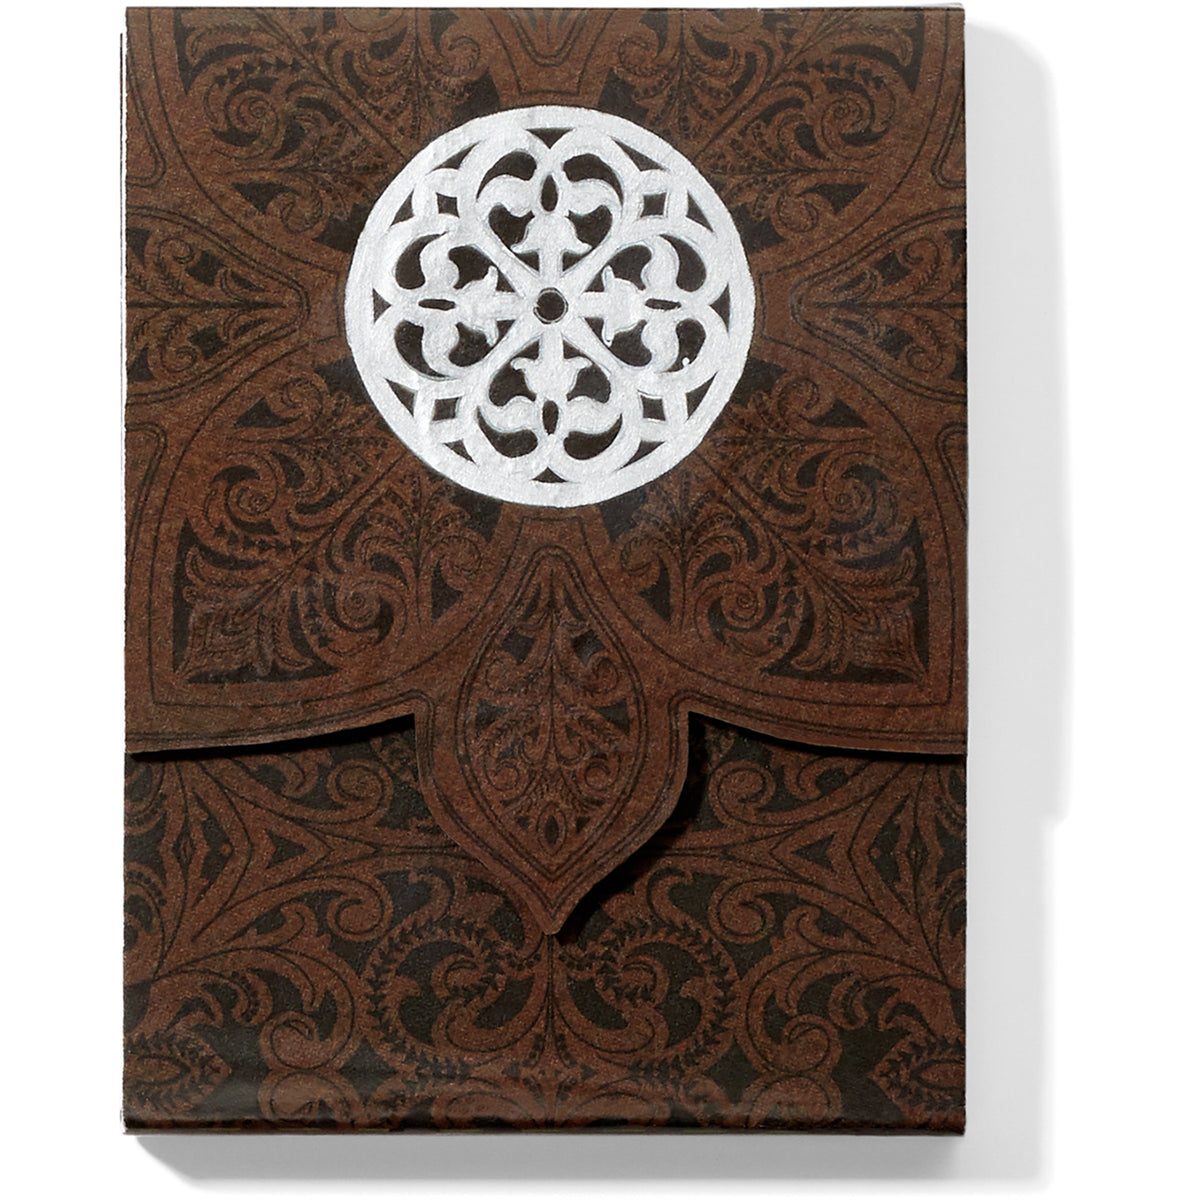 Brighton Ferrara Rose Window Notepad